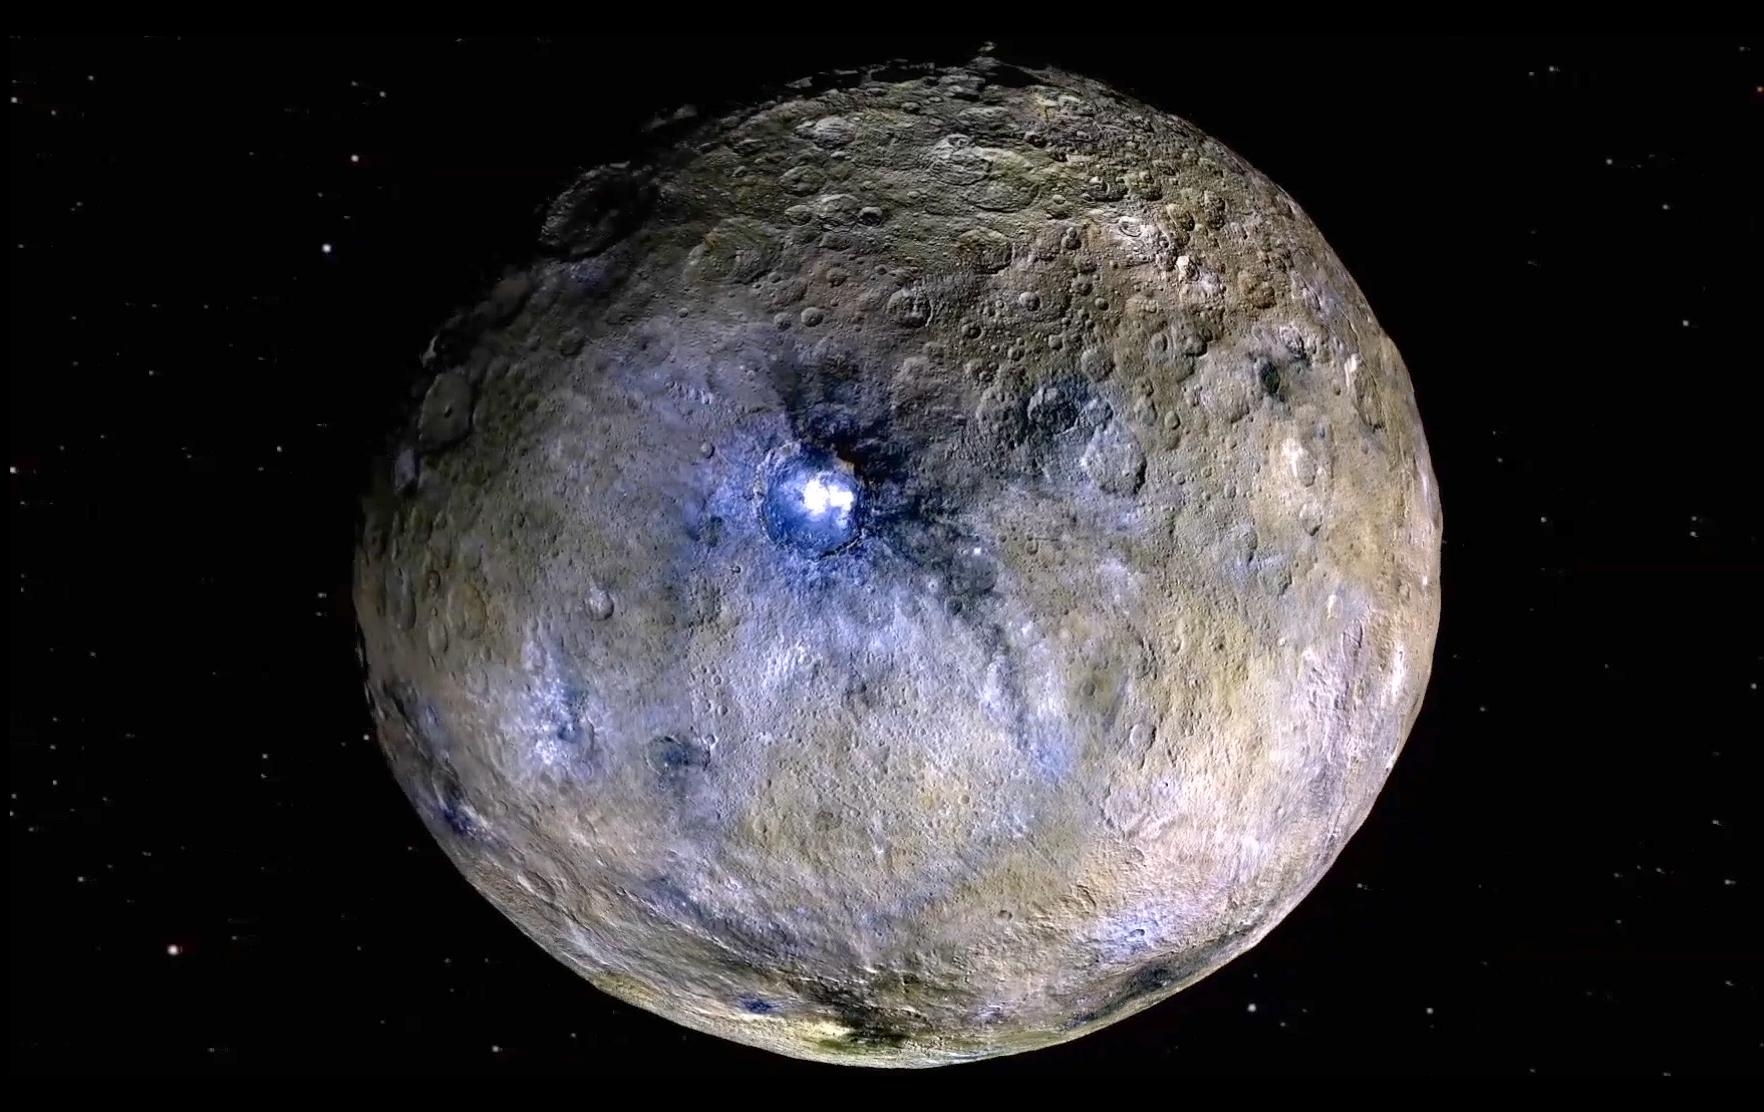 Image - Ceres, a dwarf planet in the asteroid belt pictured here in this NASA-produced false-color image, may be the source of organic matter found on two meteorites that crashed to Earth in 1998. (Credit: NASA)